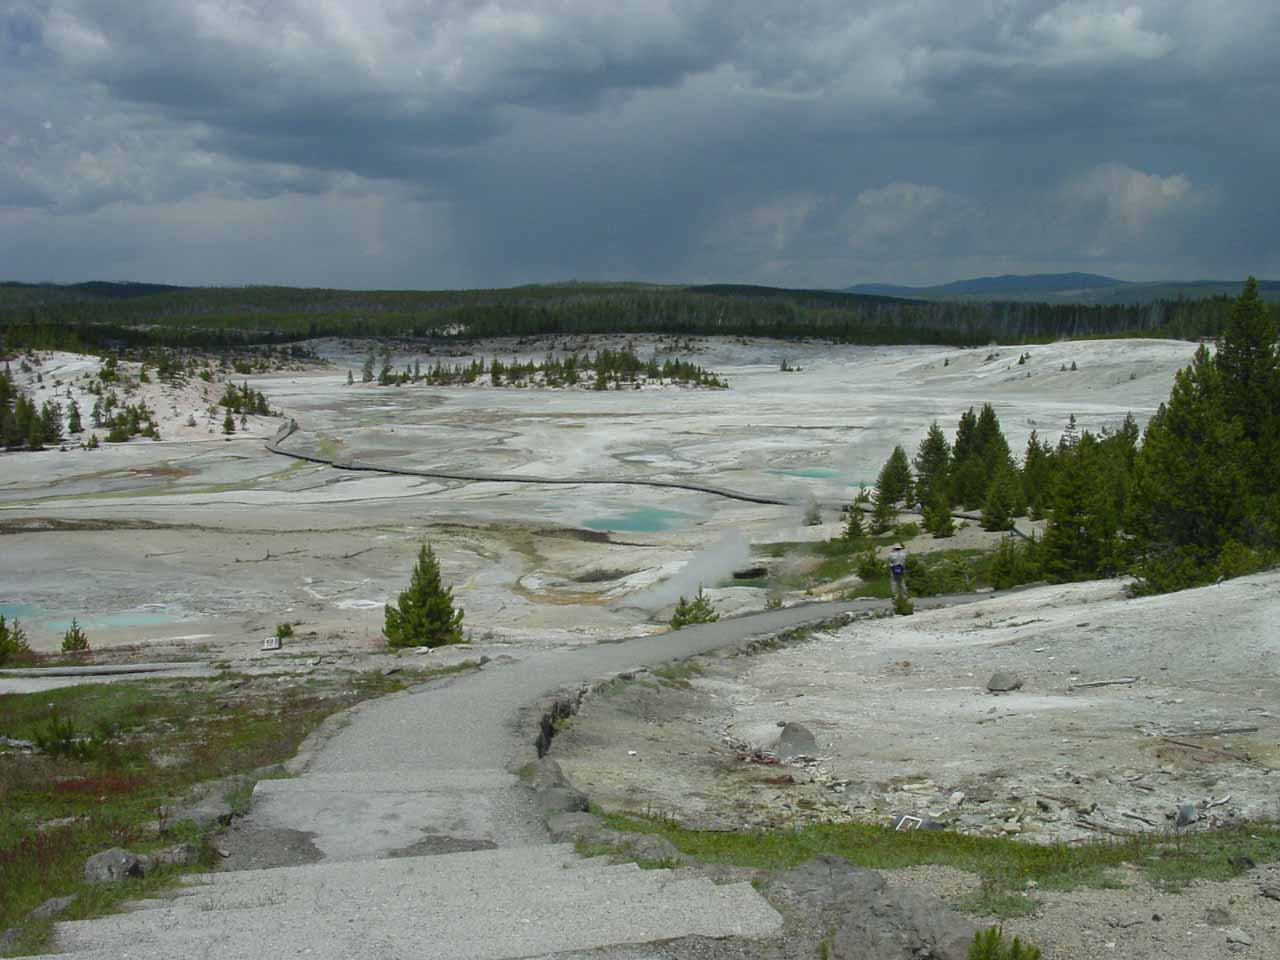 Big Sky was one of the towns set up for tourism as it was on the way to west entrance of Yellowstone National Park where the very active Norris Geyser Basin was further east of that entrance